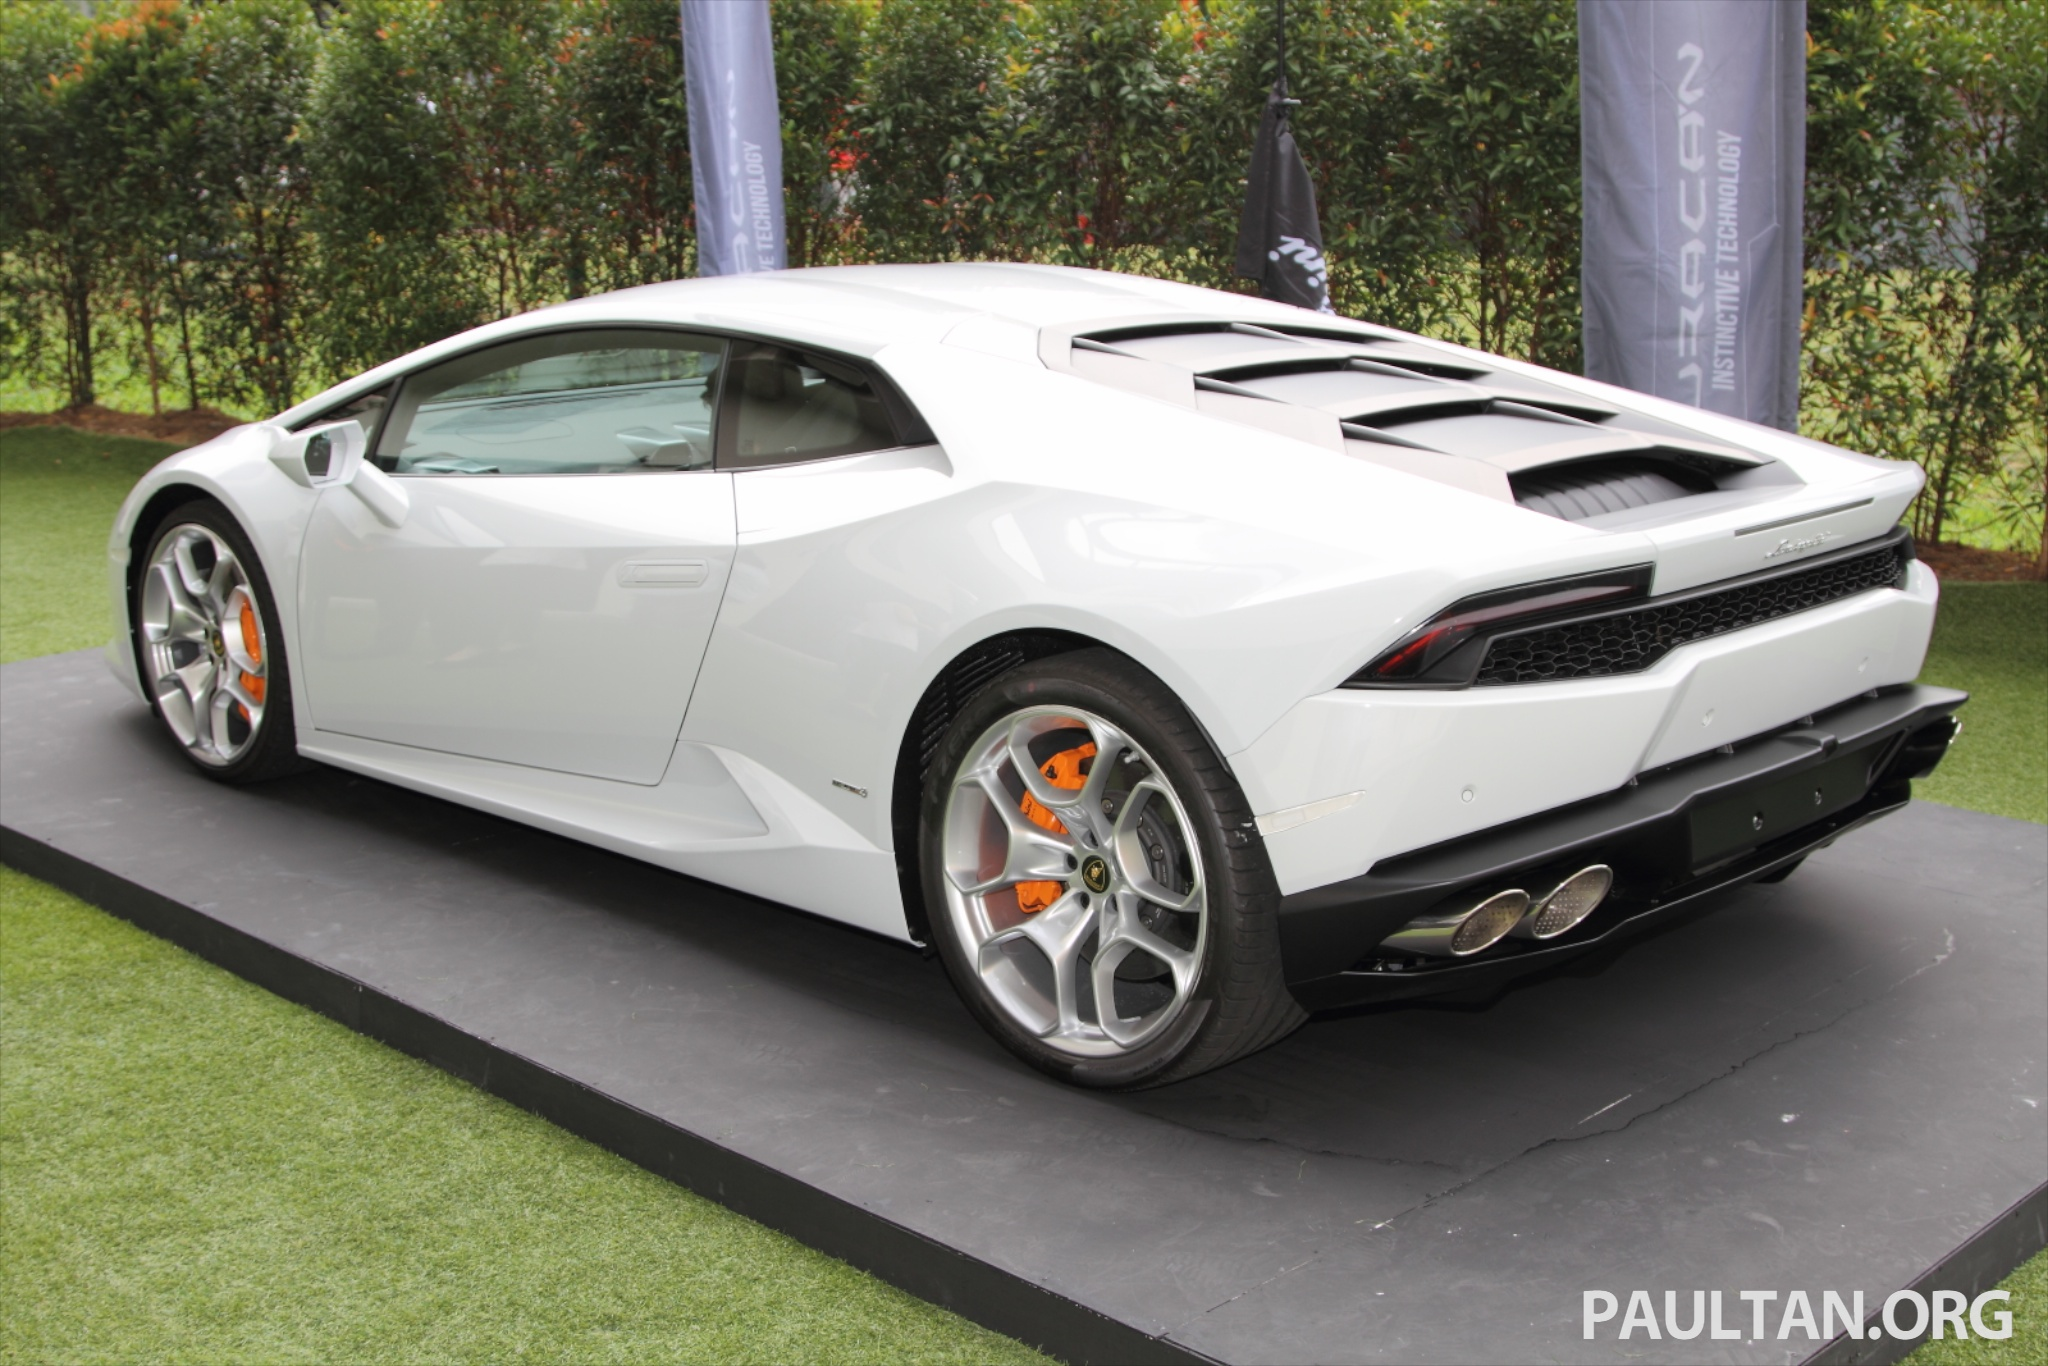 Lamborghini Huracan Lp 610 4 Launched In Malaysia Rm1 2 Million Tax Free Rm2 1 Million With